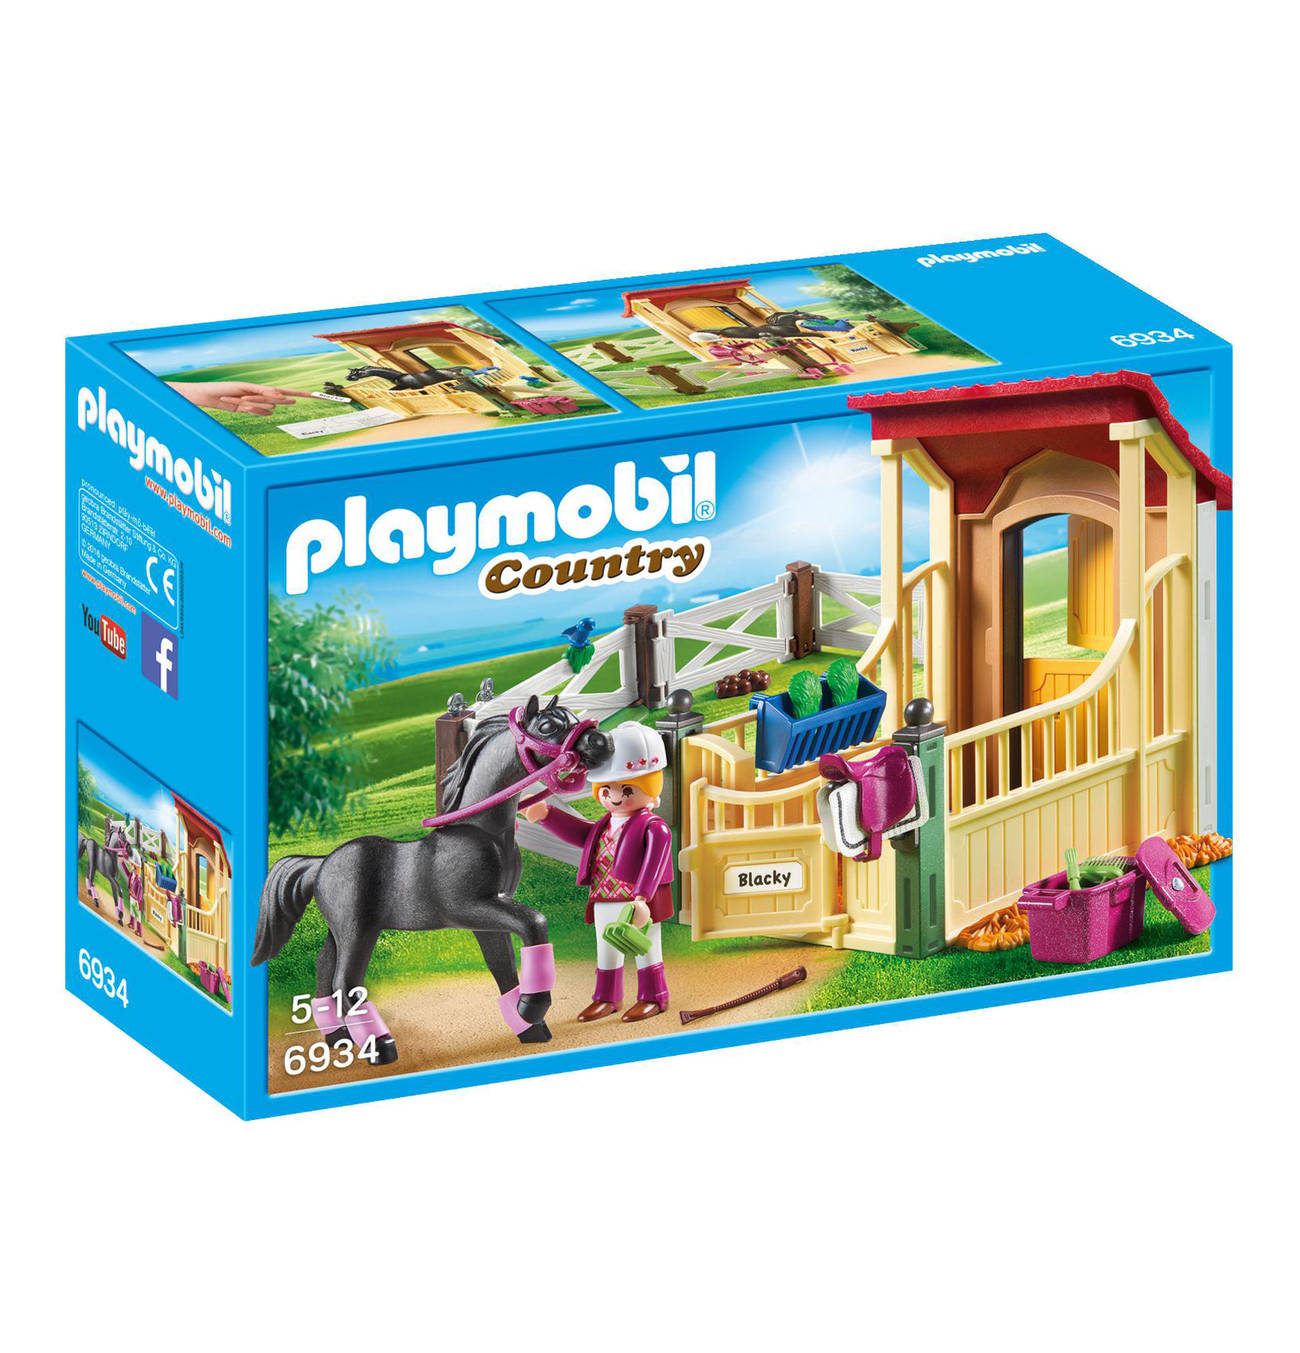 Playmobil 6932 Country Horse-Drawn Wagon Figure and Accessories Playset